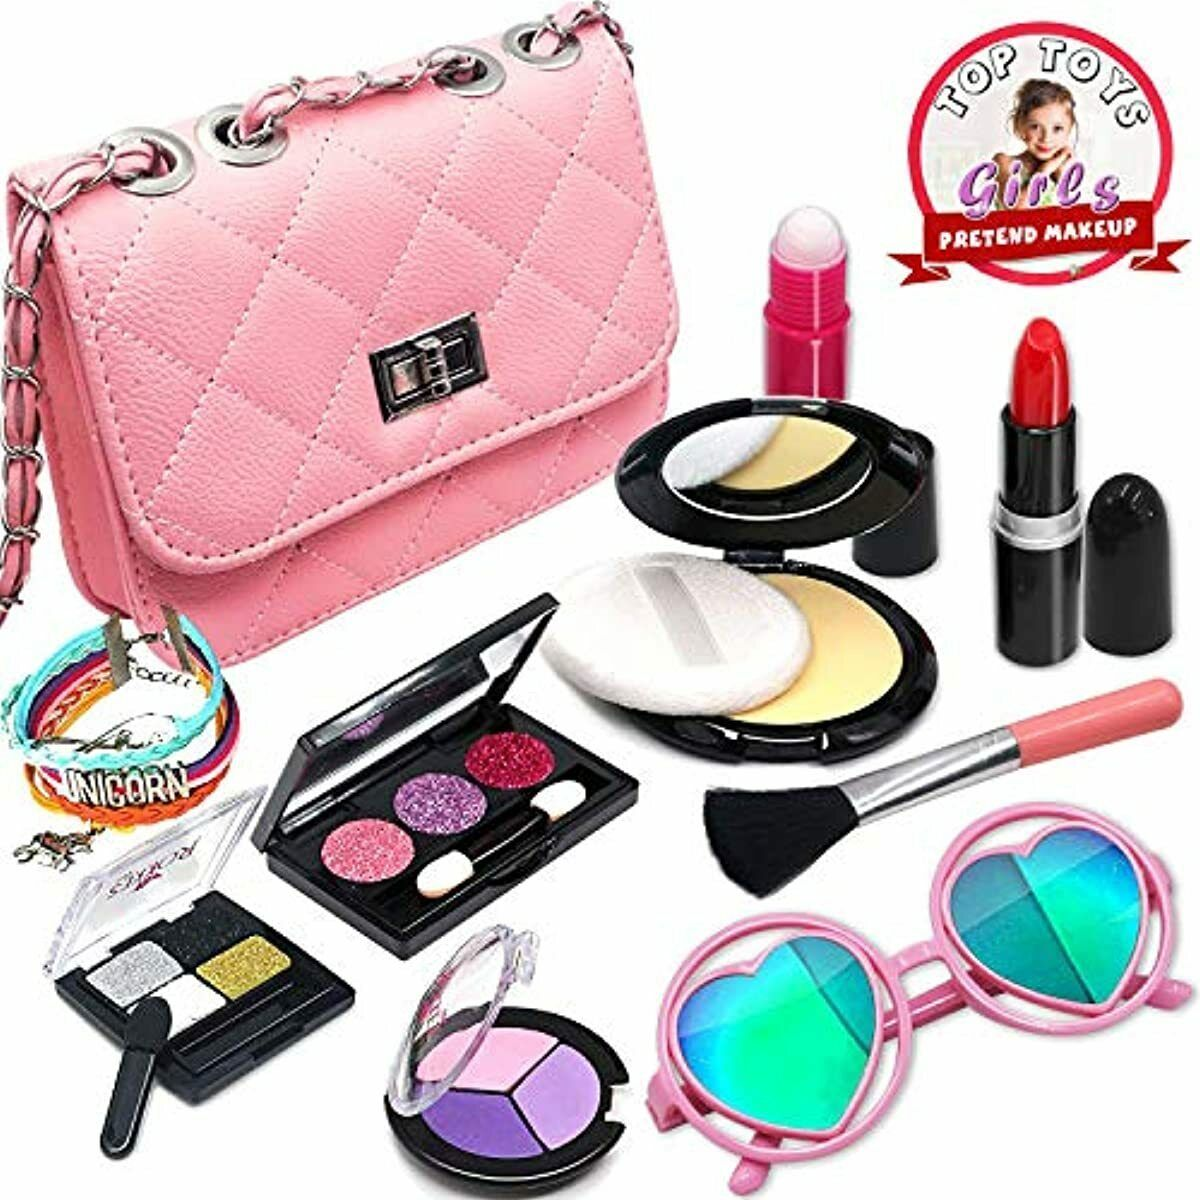 Girls Pretend Play Makeup Toy Bag For Kit Toddlers Fake Kids